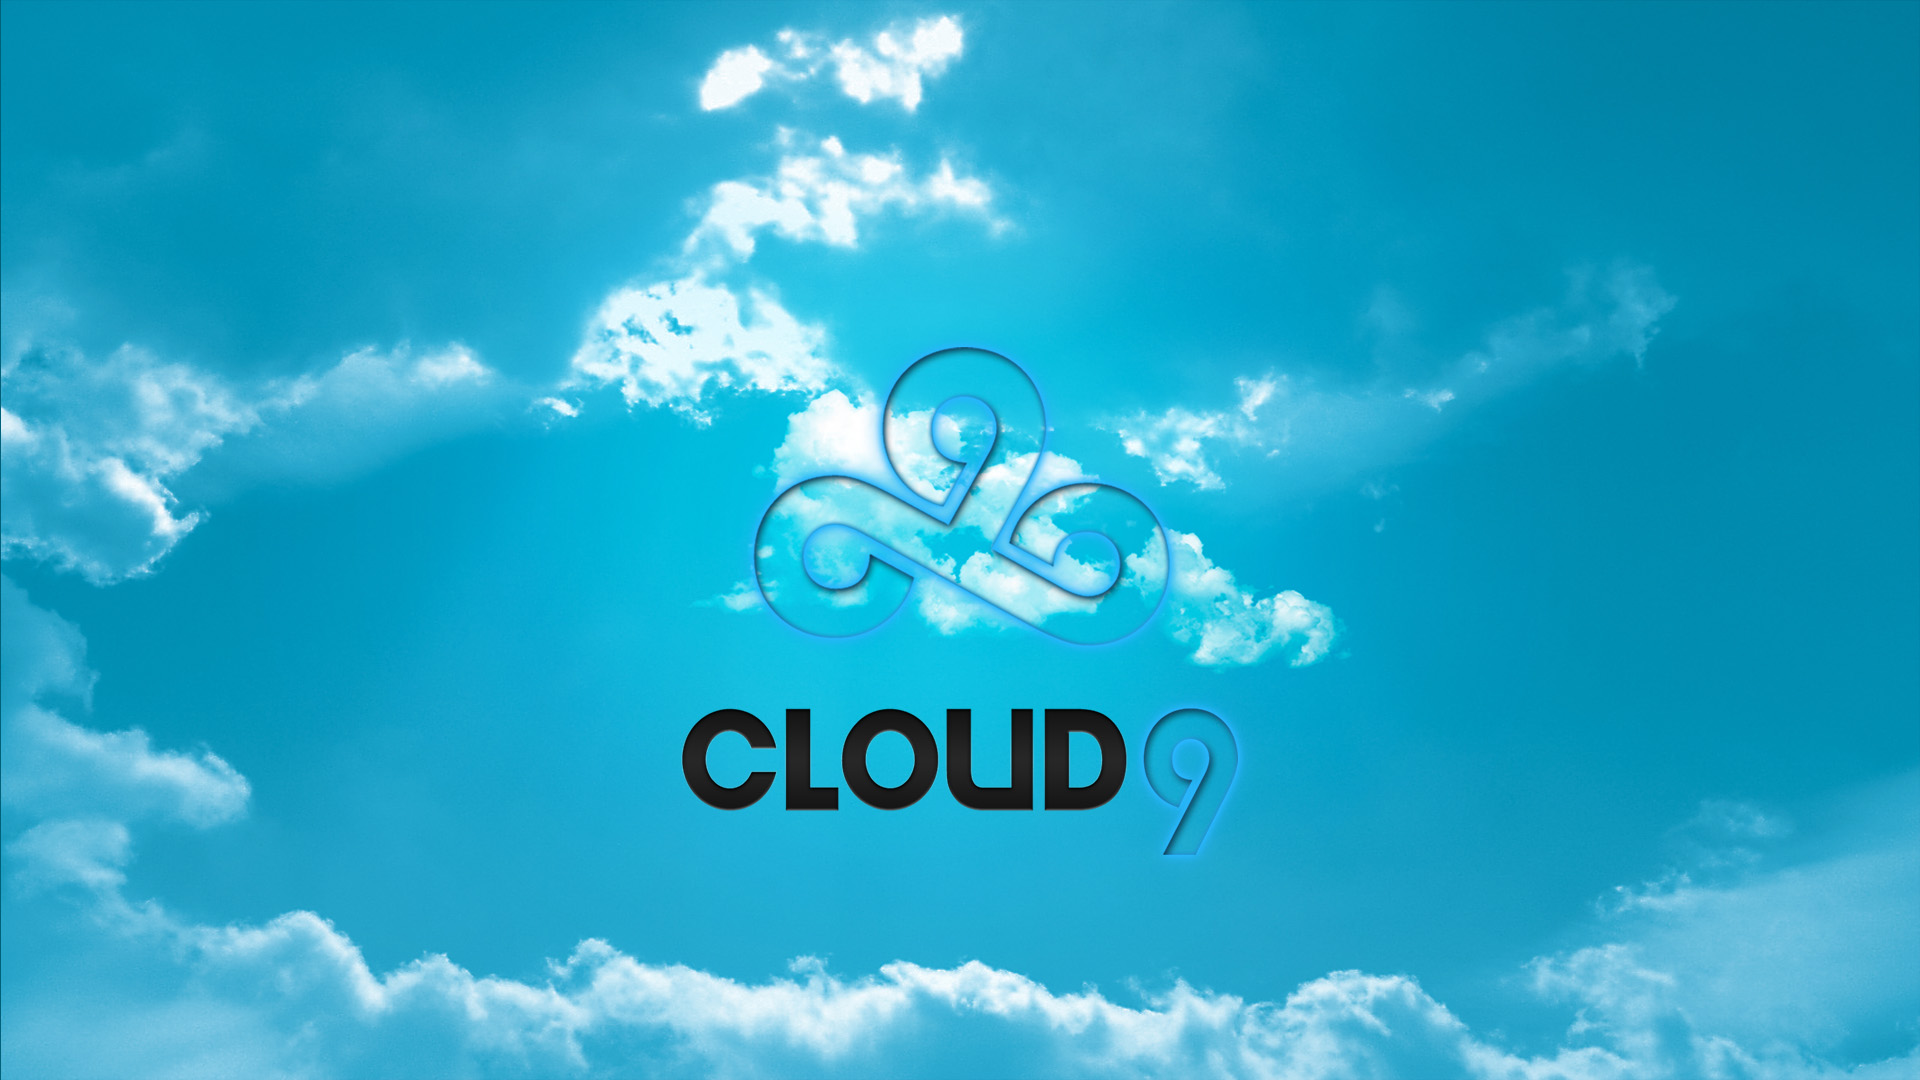 simple blue logo for cloud 9 team league of legends full